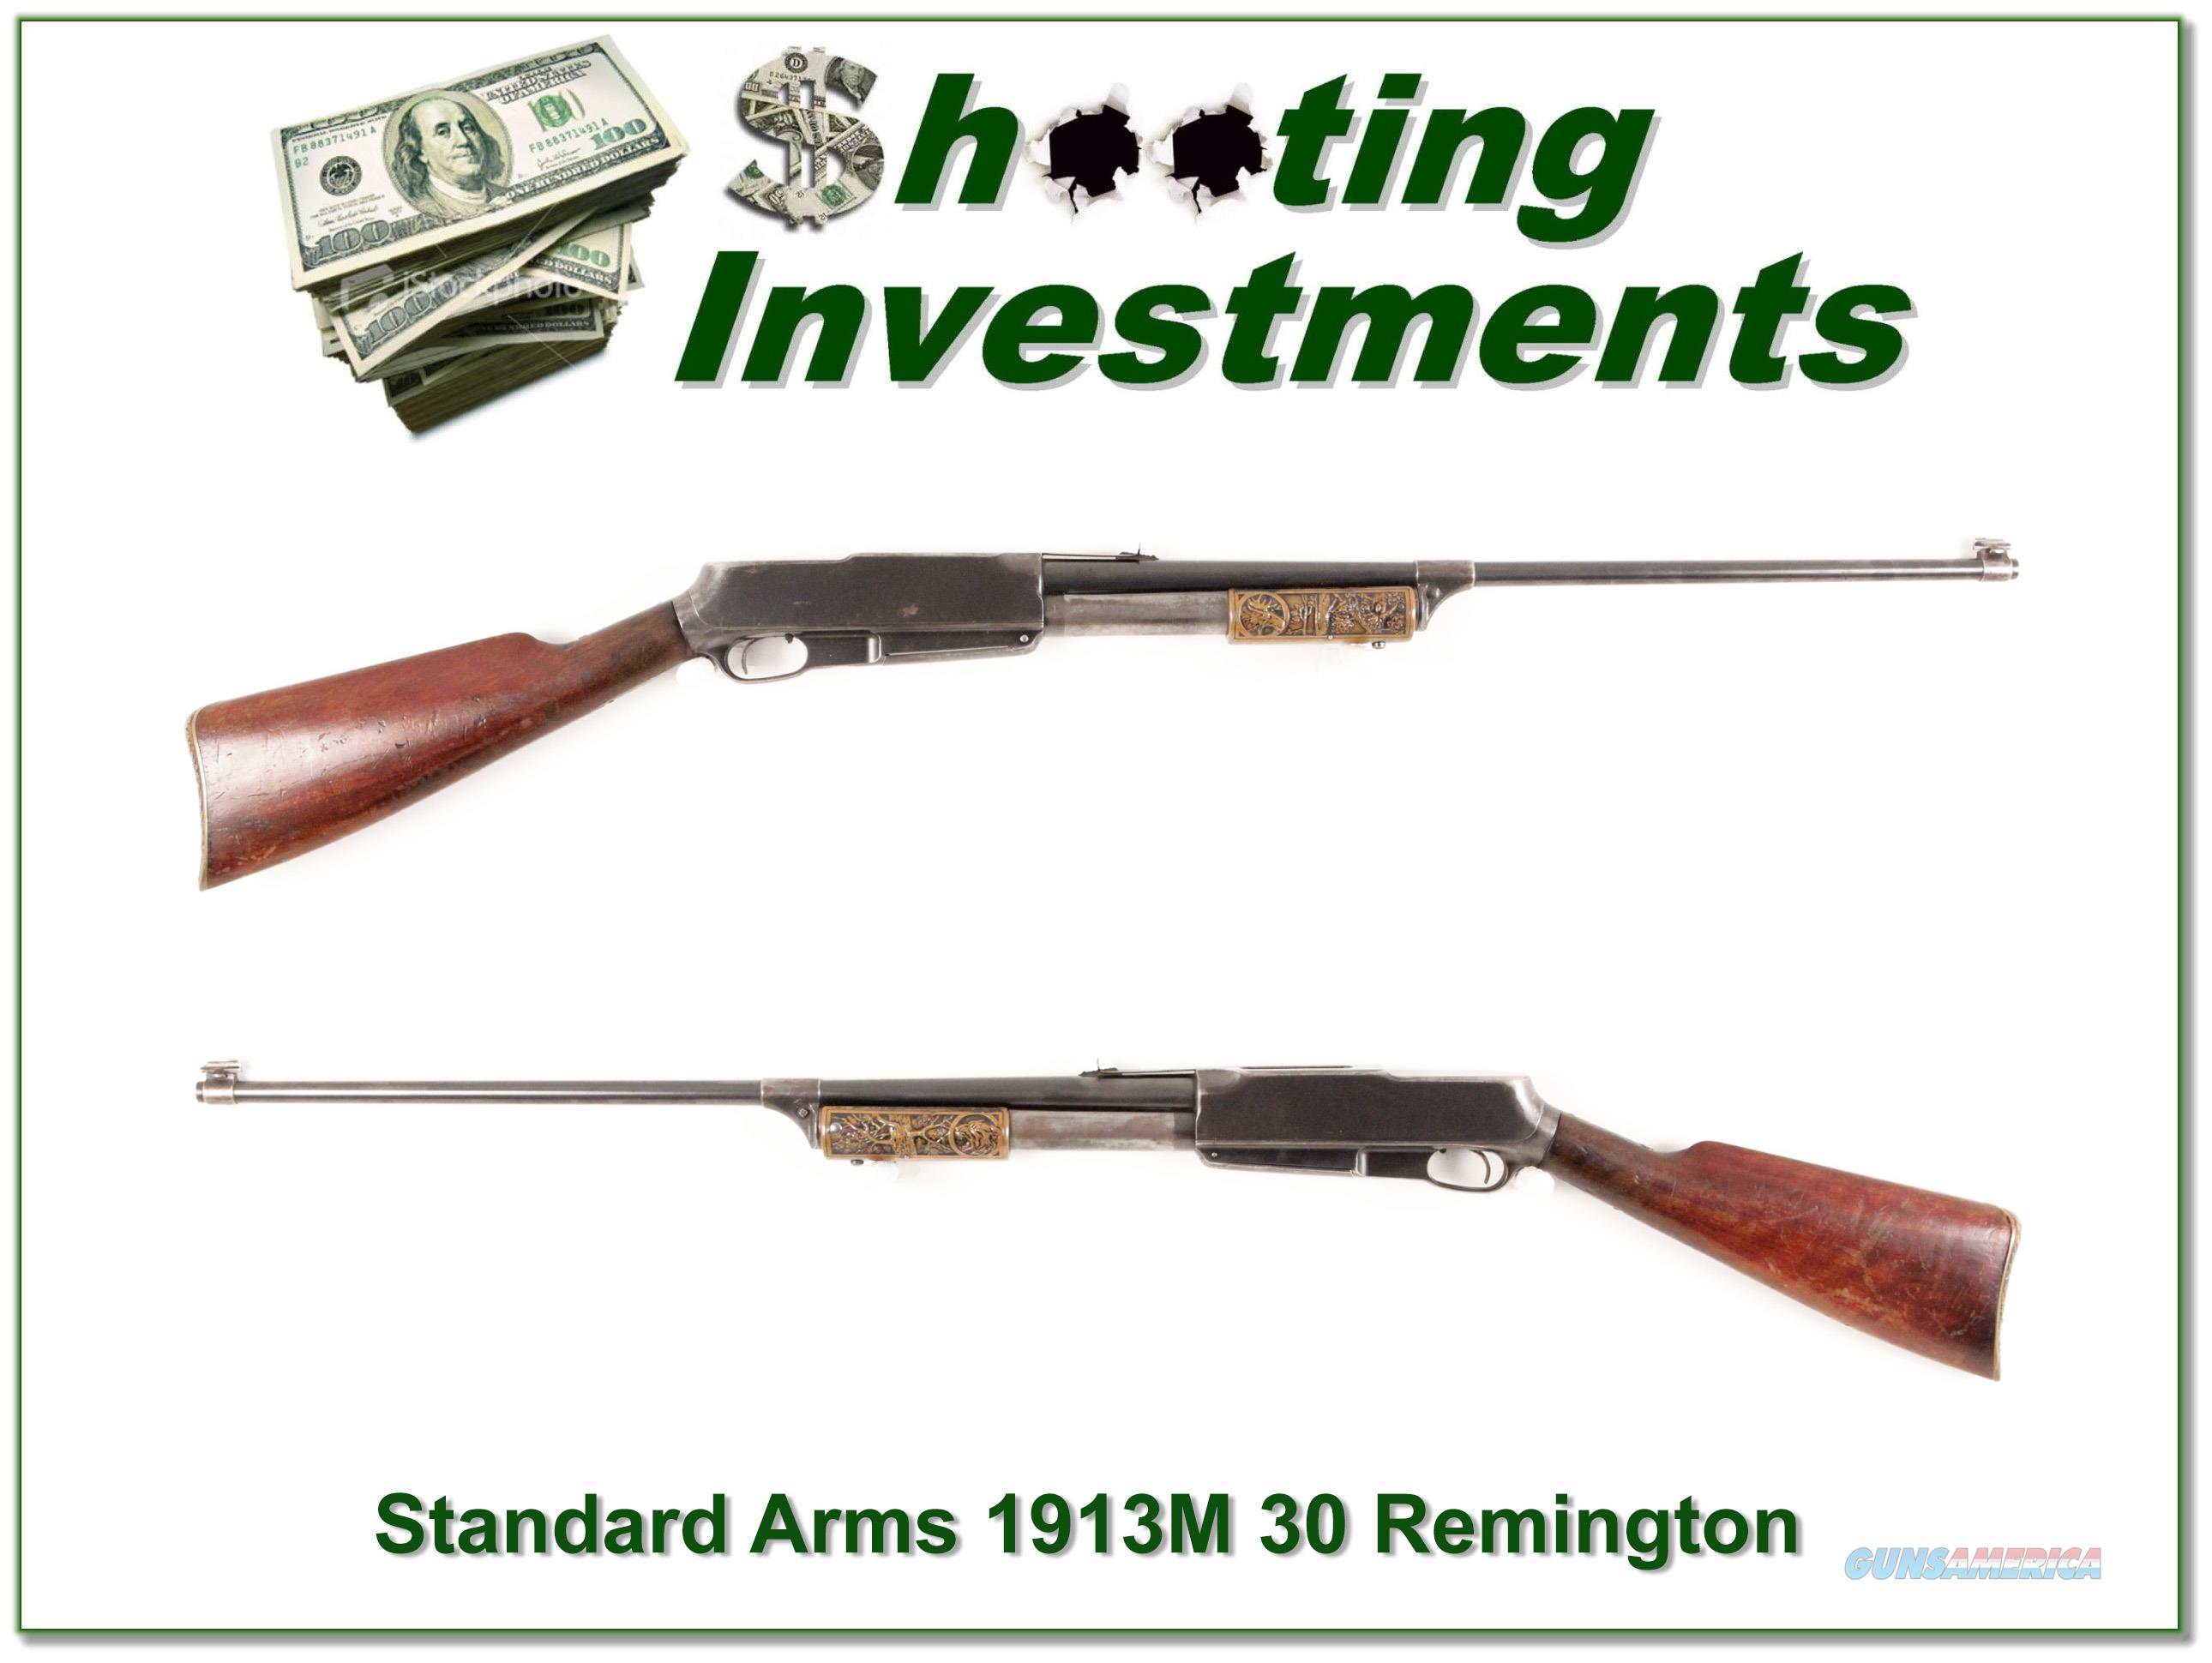 Standard Arms 1913M 30 Remington with 2 boxes ammo  Guns > Rifles > S Misc Rifles